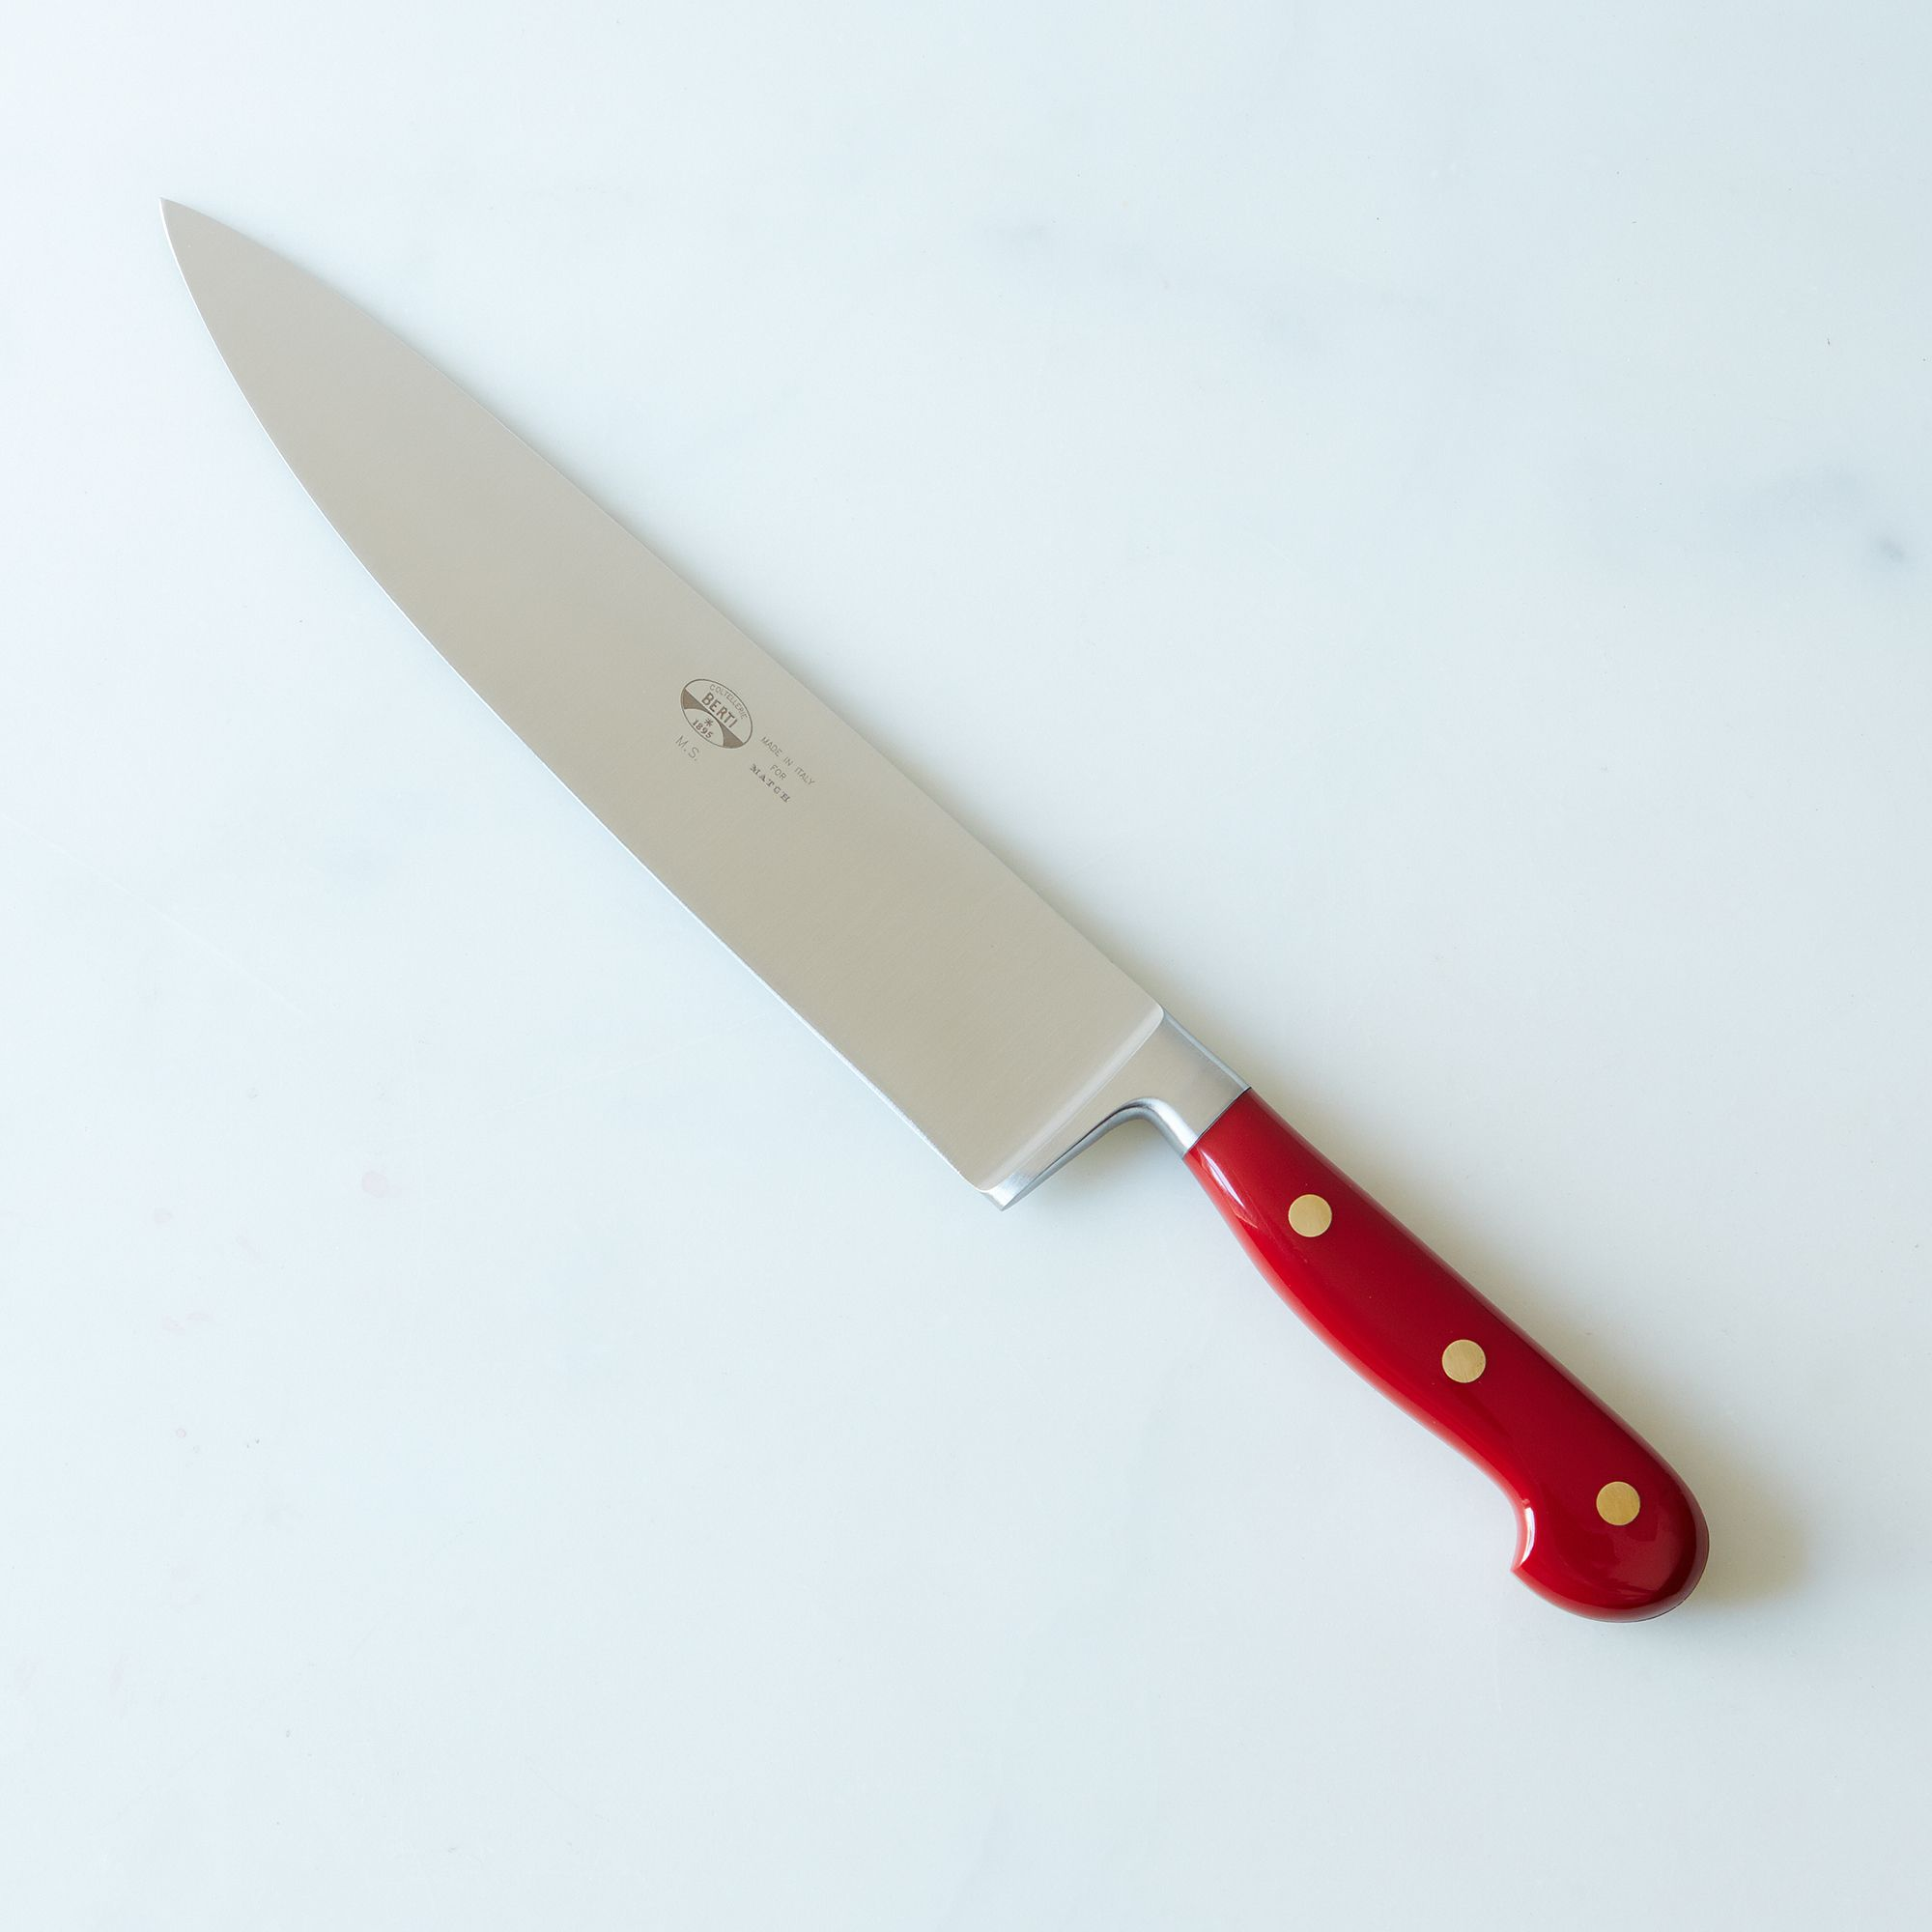 2bc02499 d463 45cd bcc7 e38fbcd9ab9f  2015 0107 match red handled knives chef knife 032